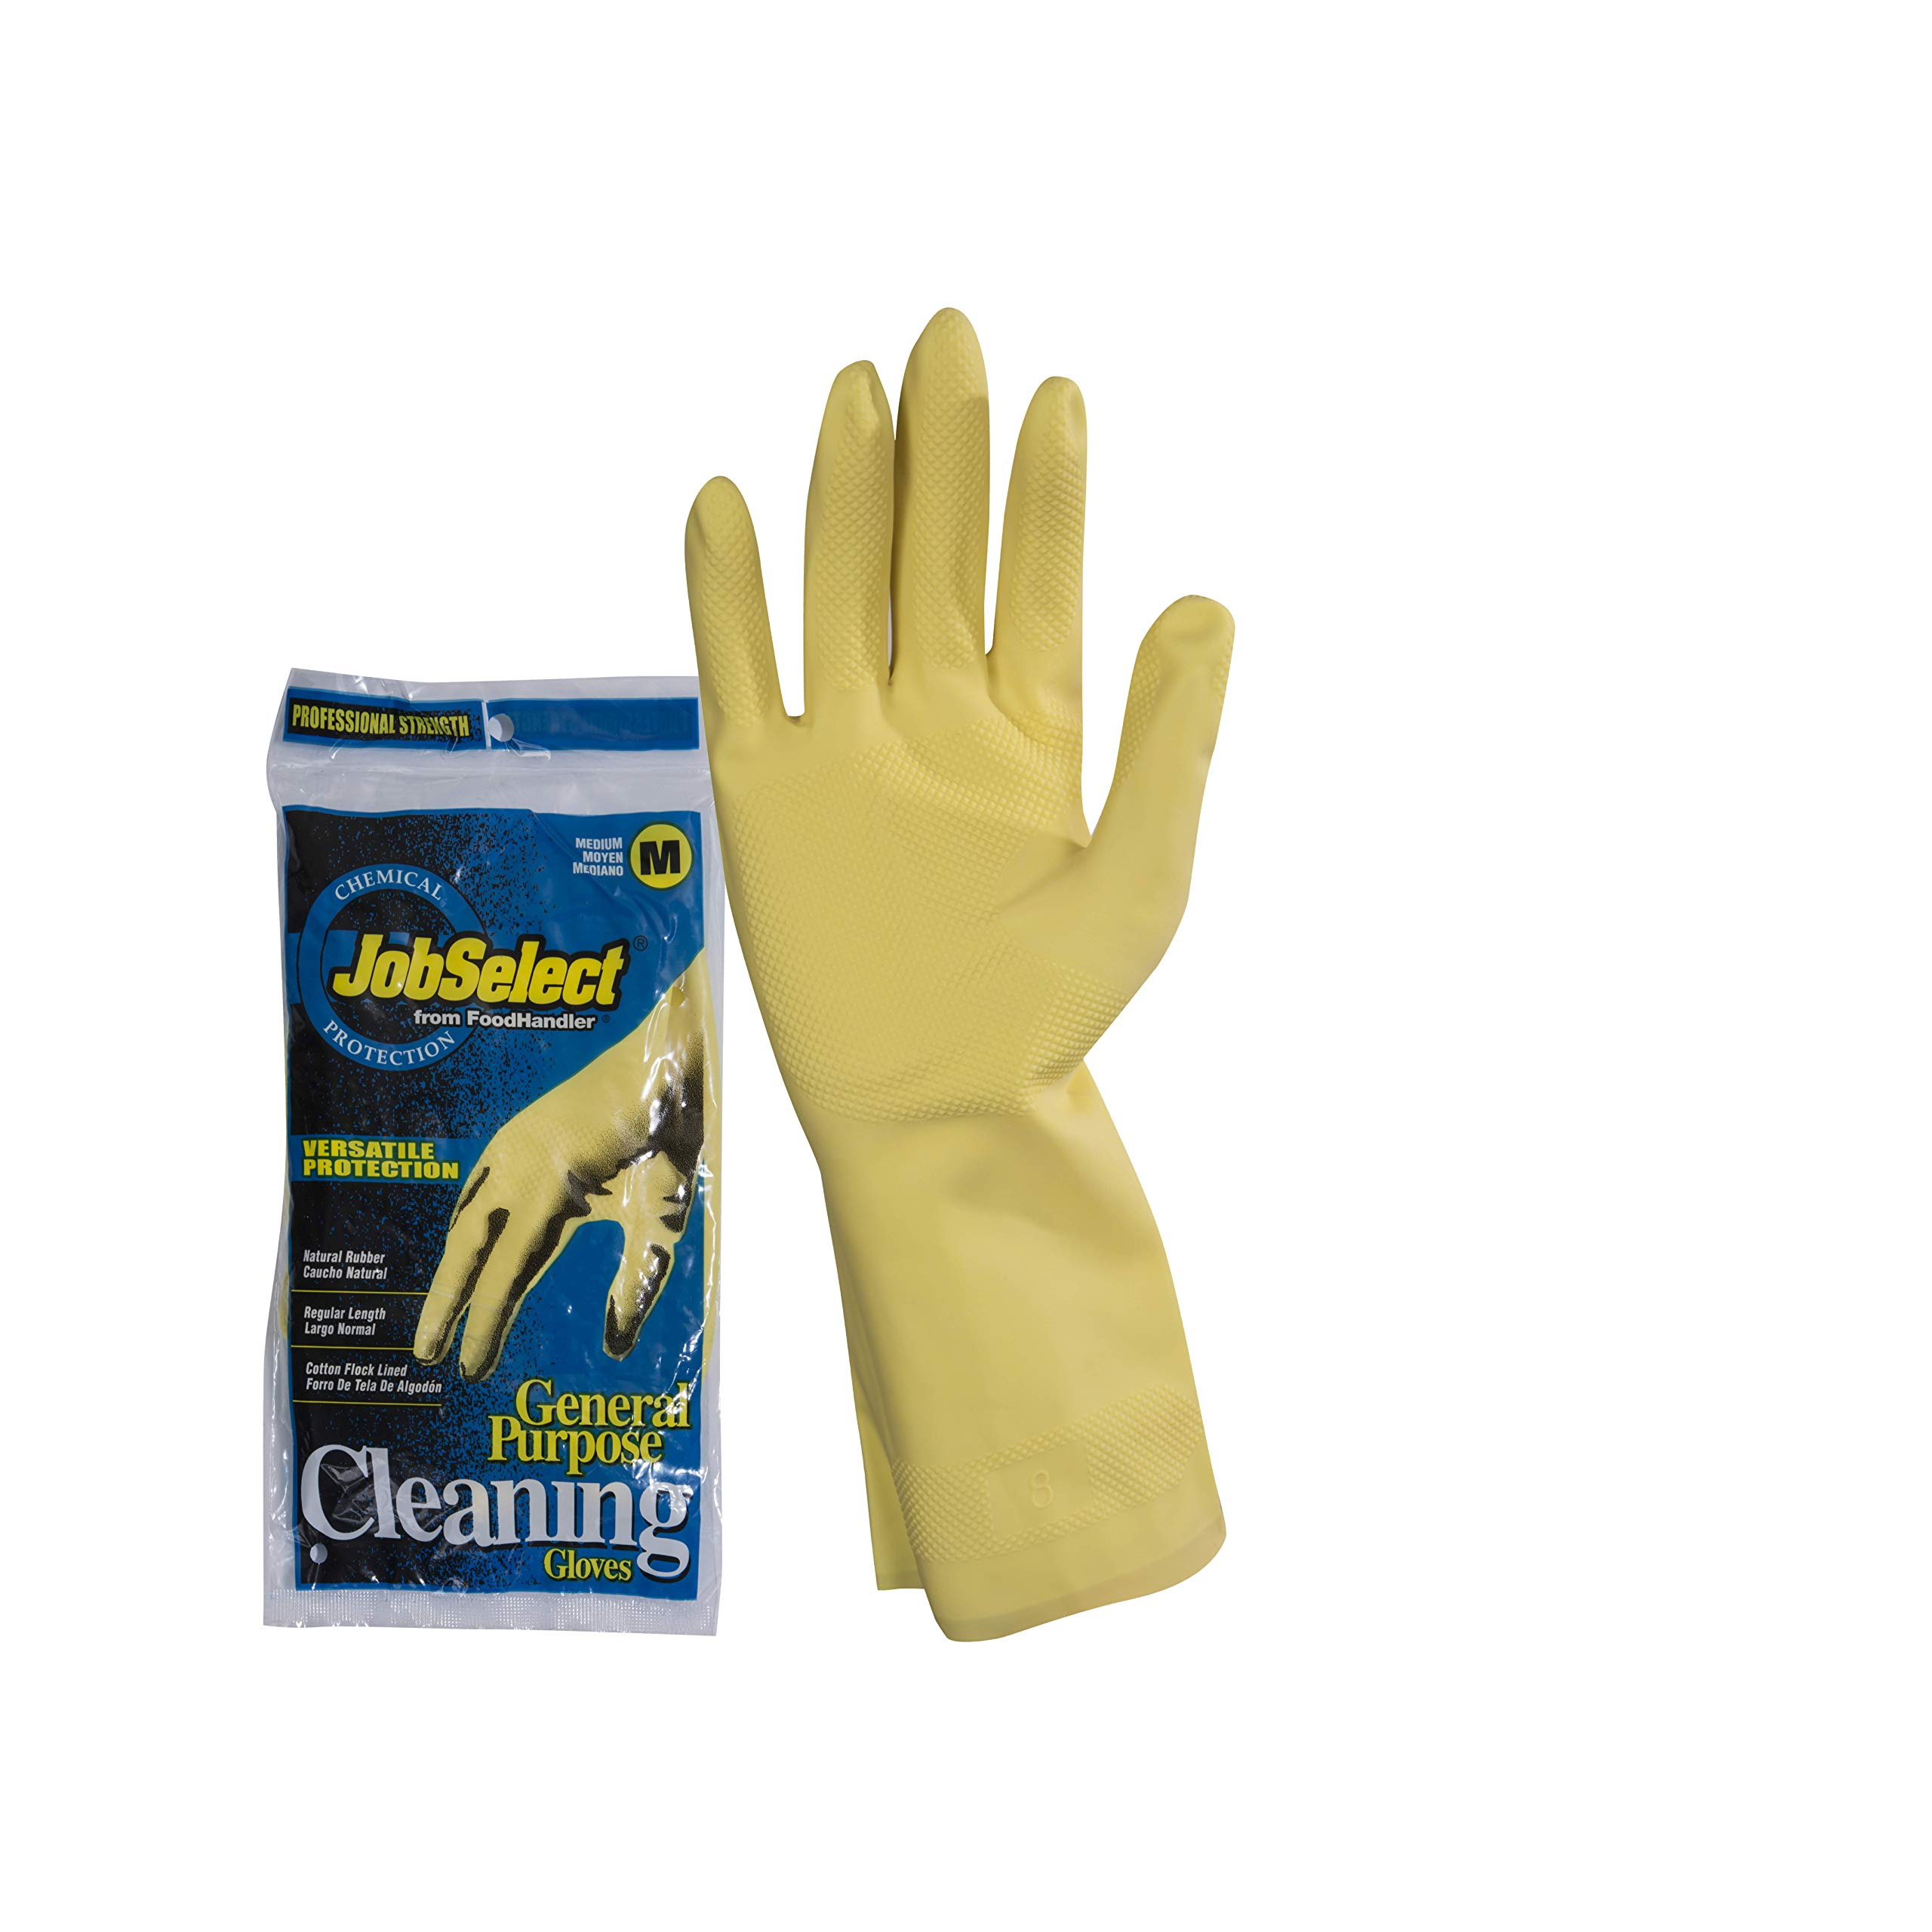 JobSelect 1005-02 JobSelect General Purpose Cleaning, Latex, MD, Yellow (Pack of 144)